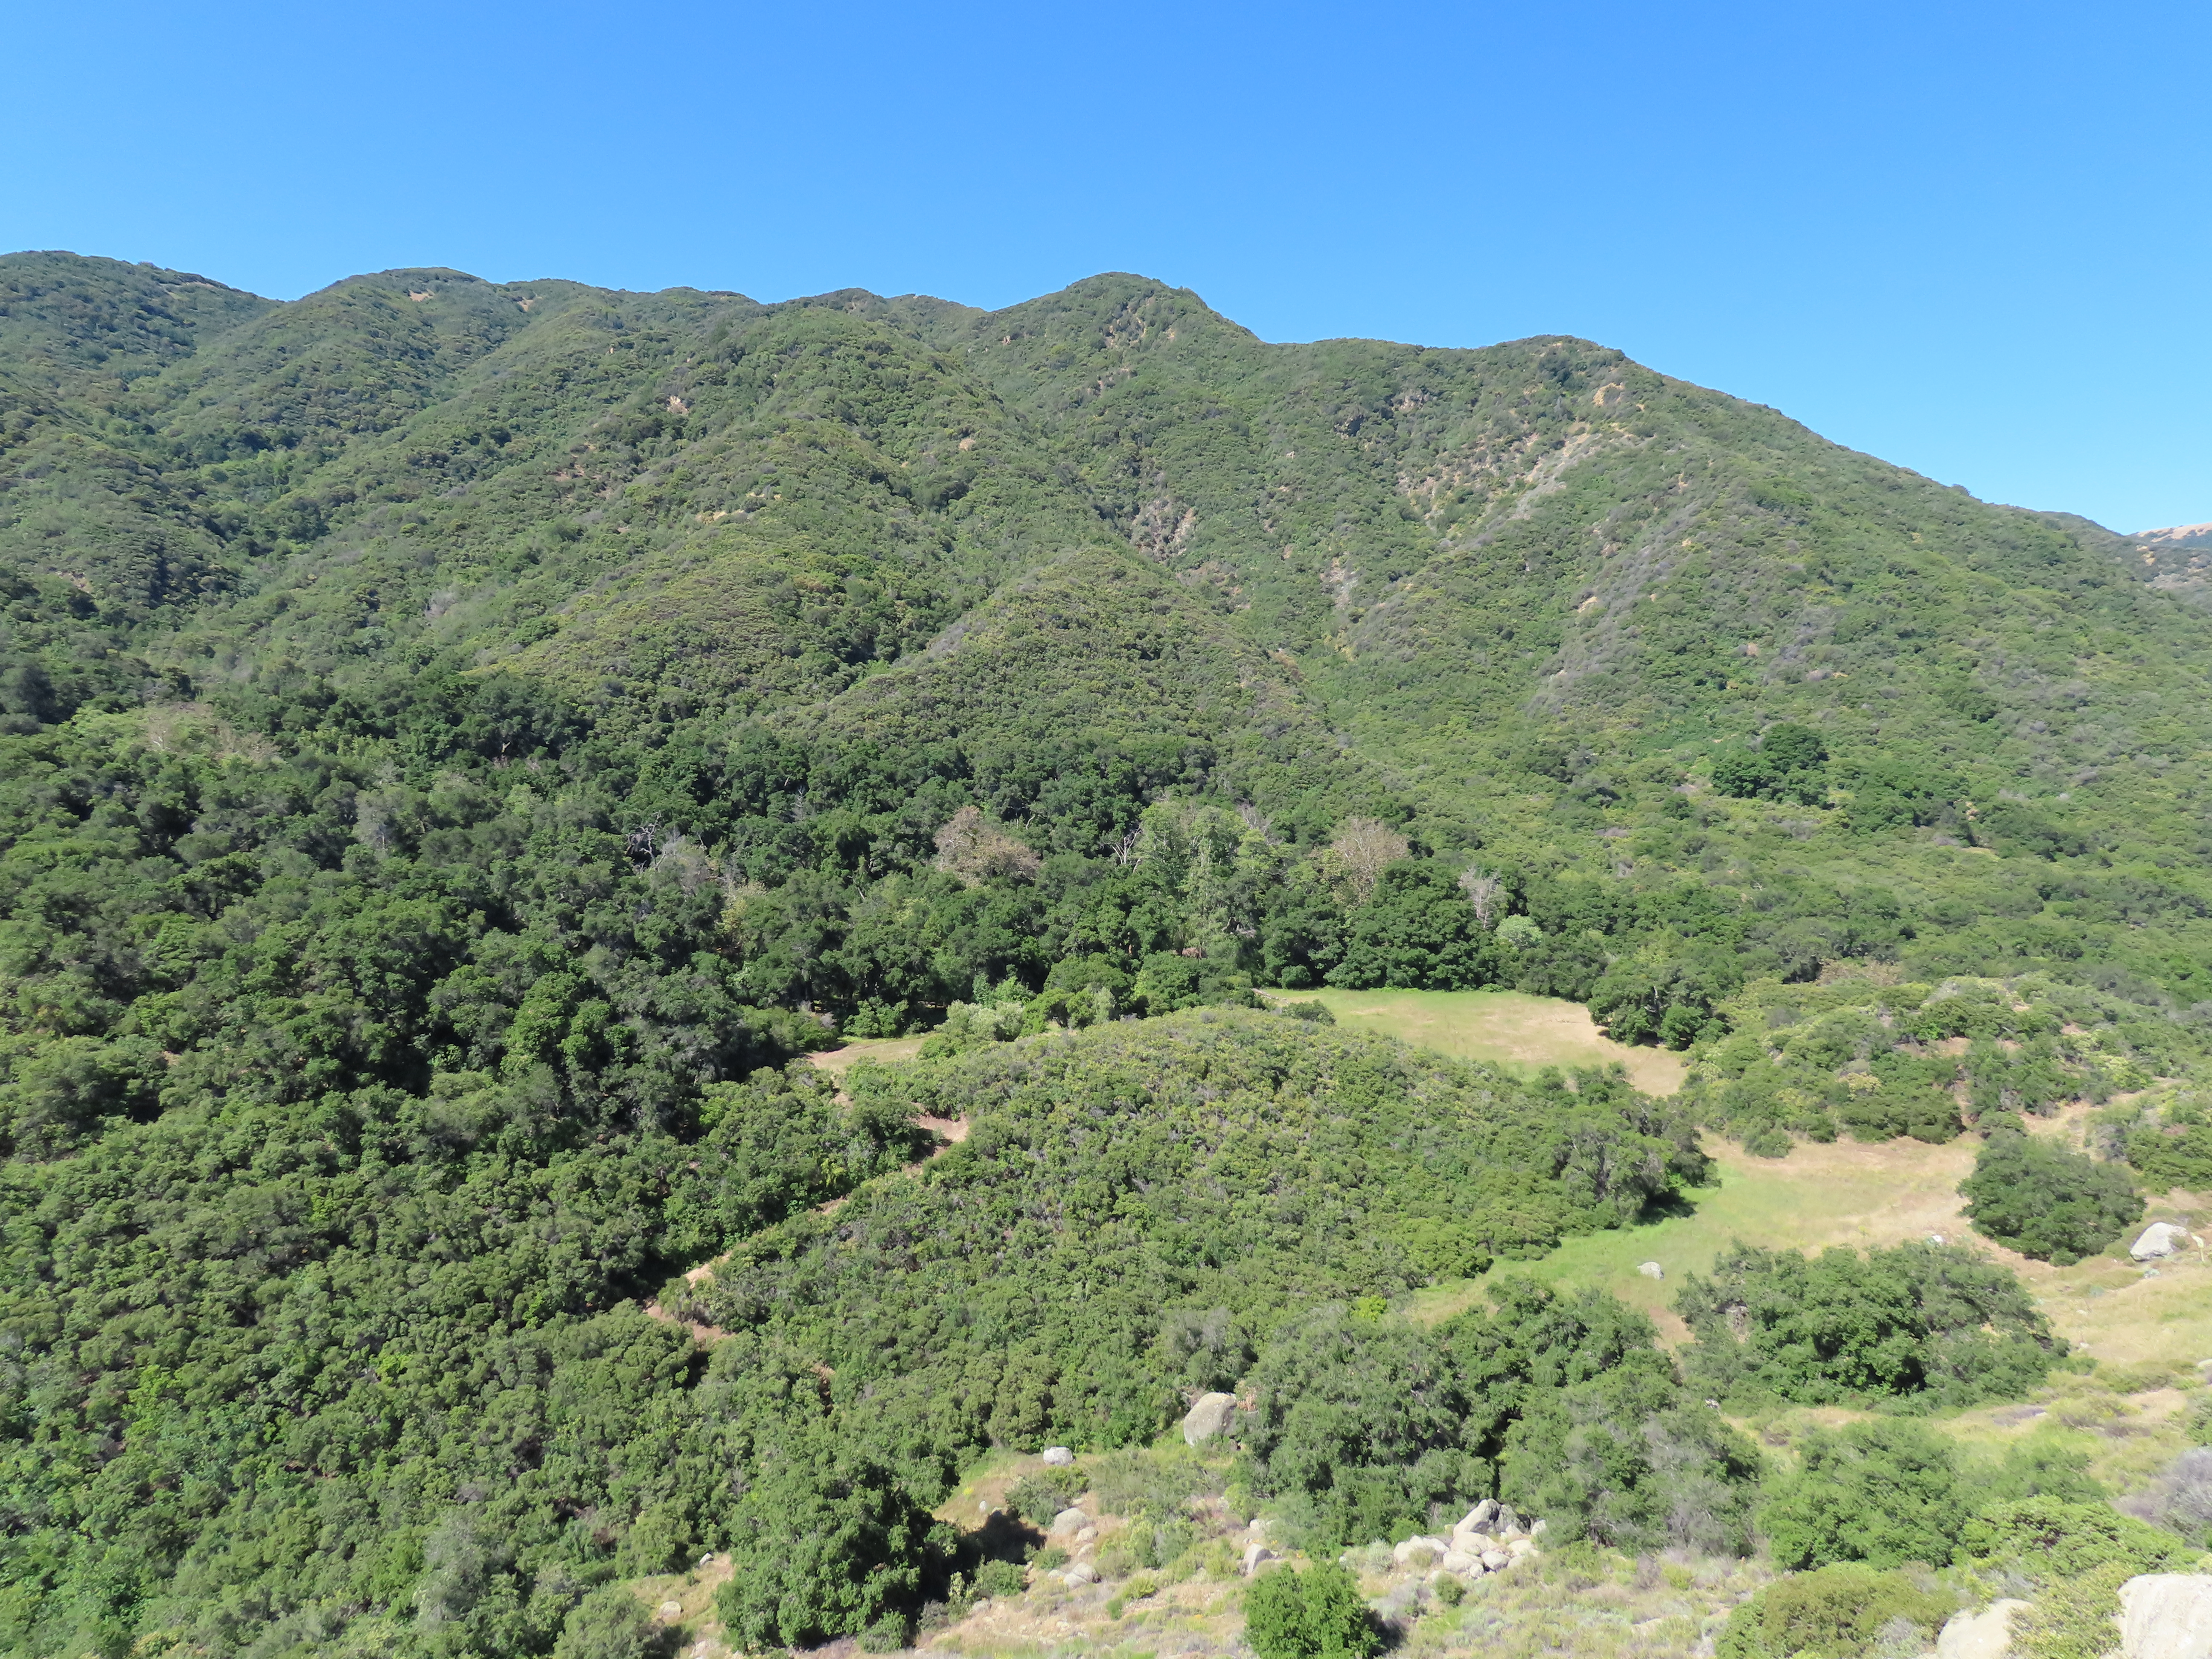 Bear Meadow Forbush Flats Camp Conestoga Frank Van Schaik Wilson Wildcats North Cold Spring Trail hiking backpacking Los Padres National Forest